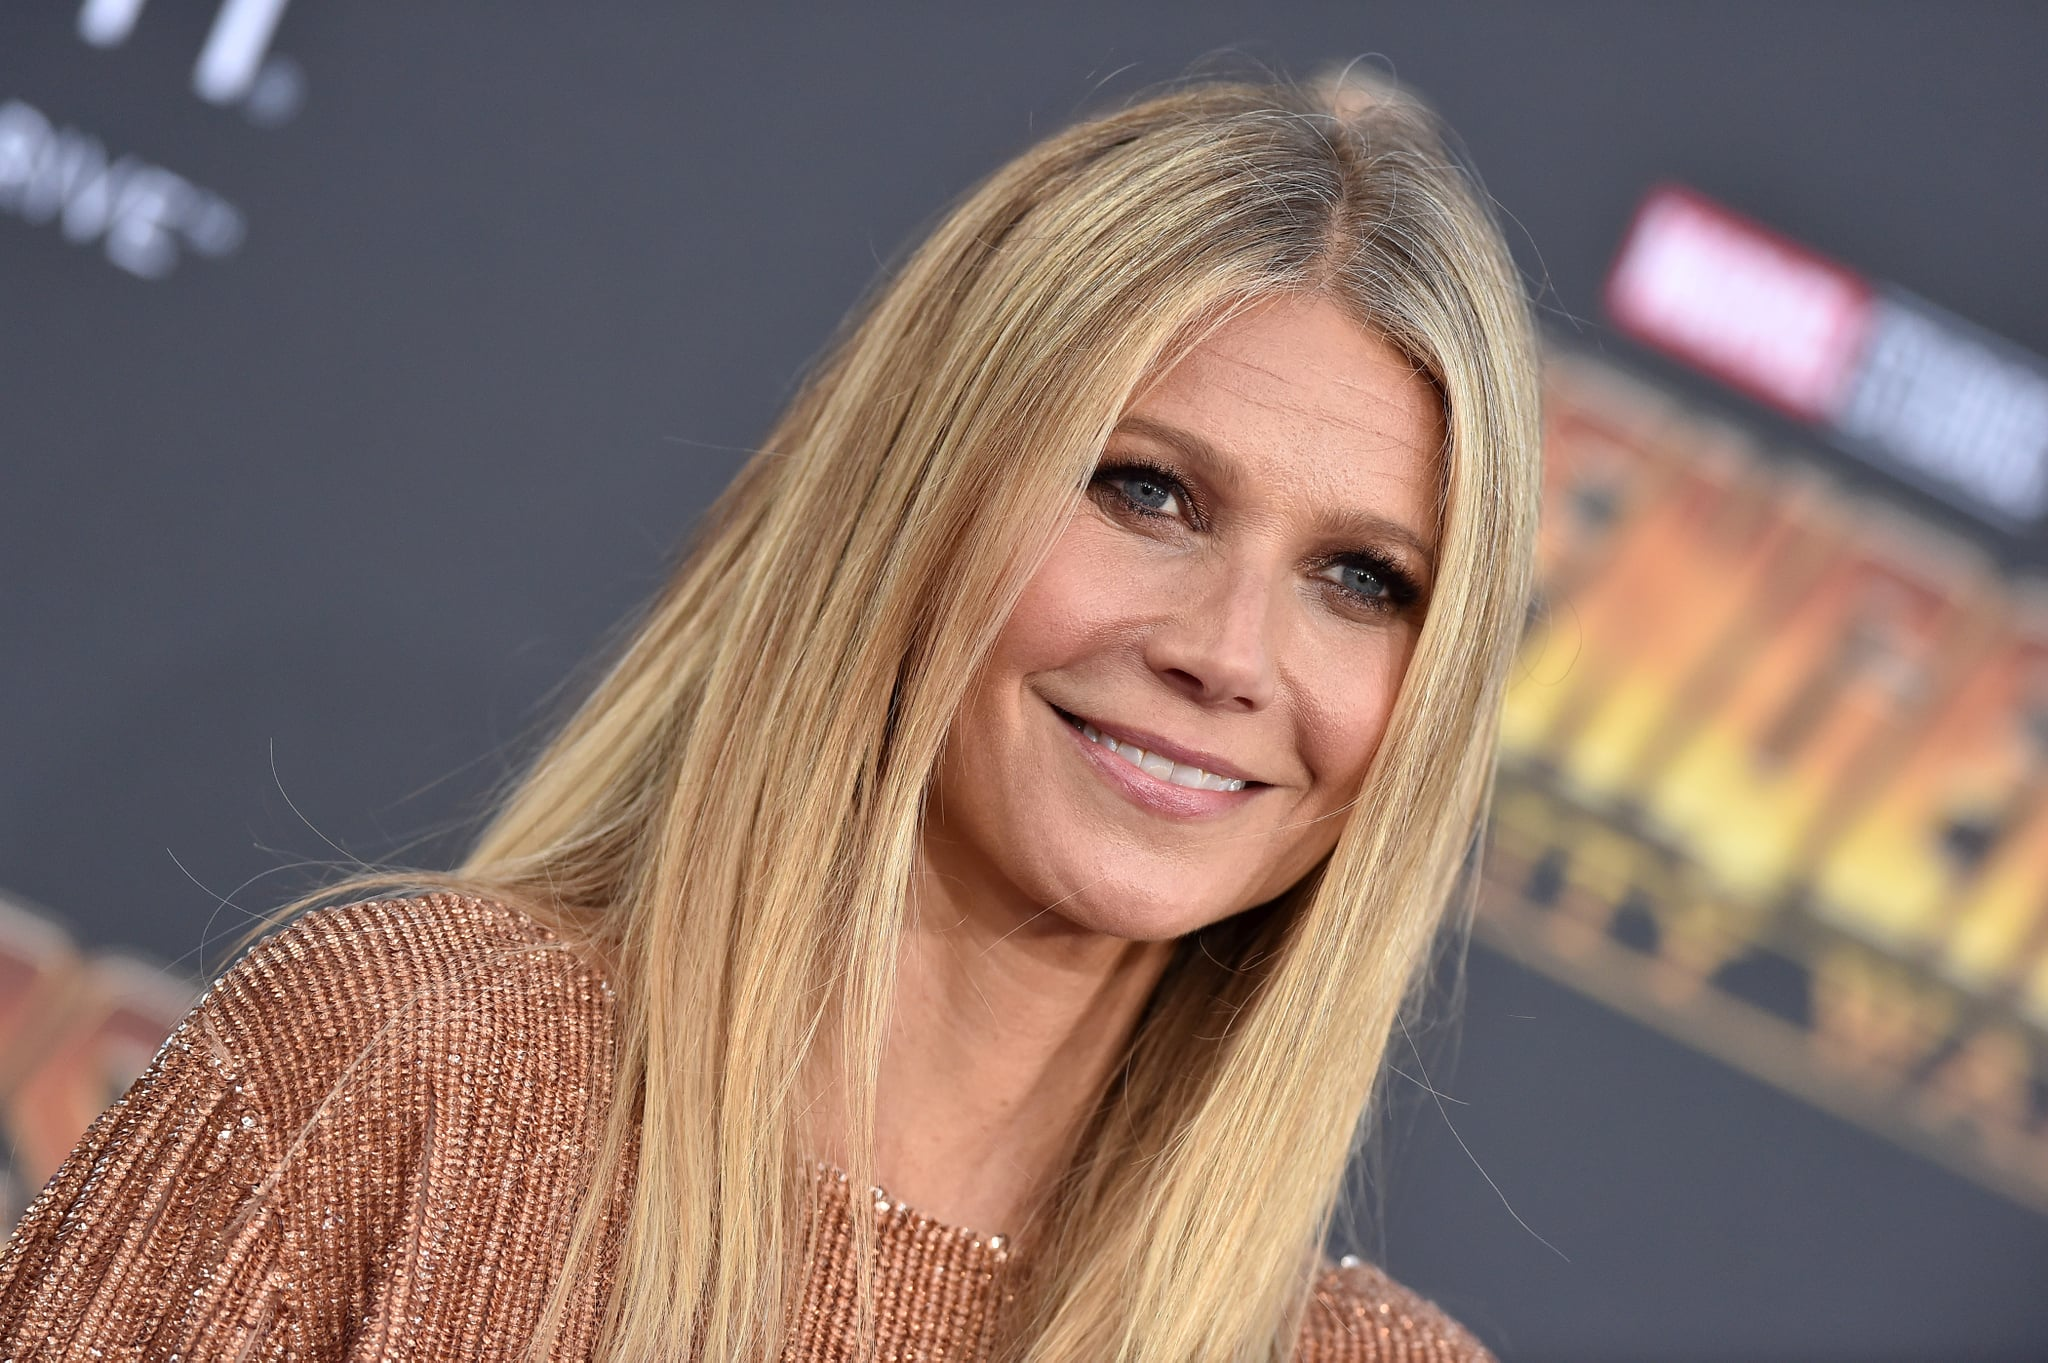 HOLLYWOOD, CA - APRIL 23:  Actress Gwyneth Paltrow attends the premiere of Disney and Marvel's 'Avengers: Infinity War' on April 23, 2018 in Hollywood, California.  (Photo by Axelle/Bauer-Griffin/FilmMagic)